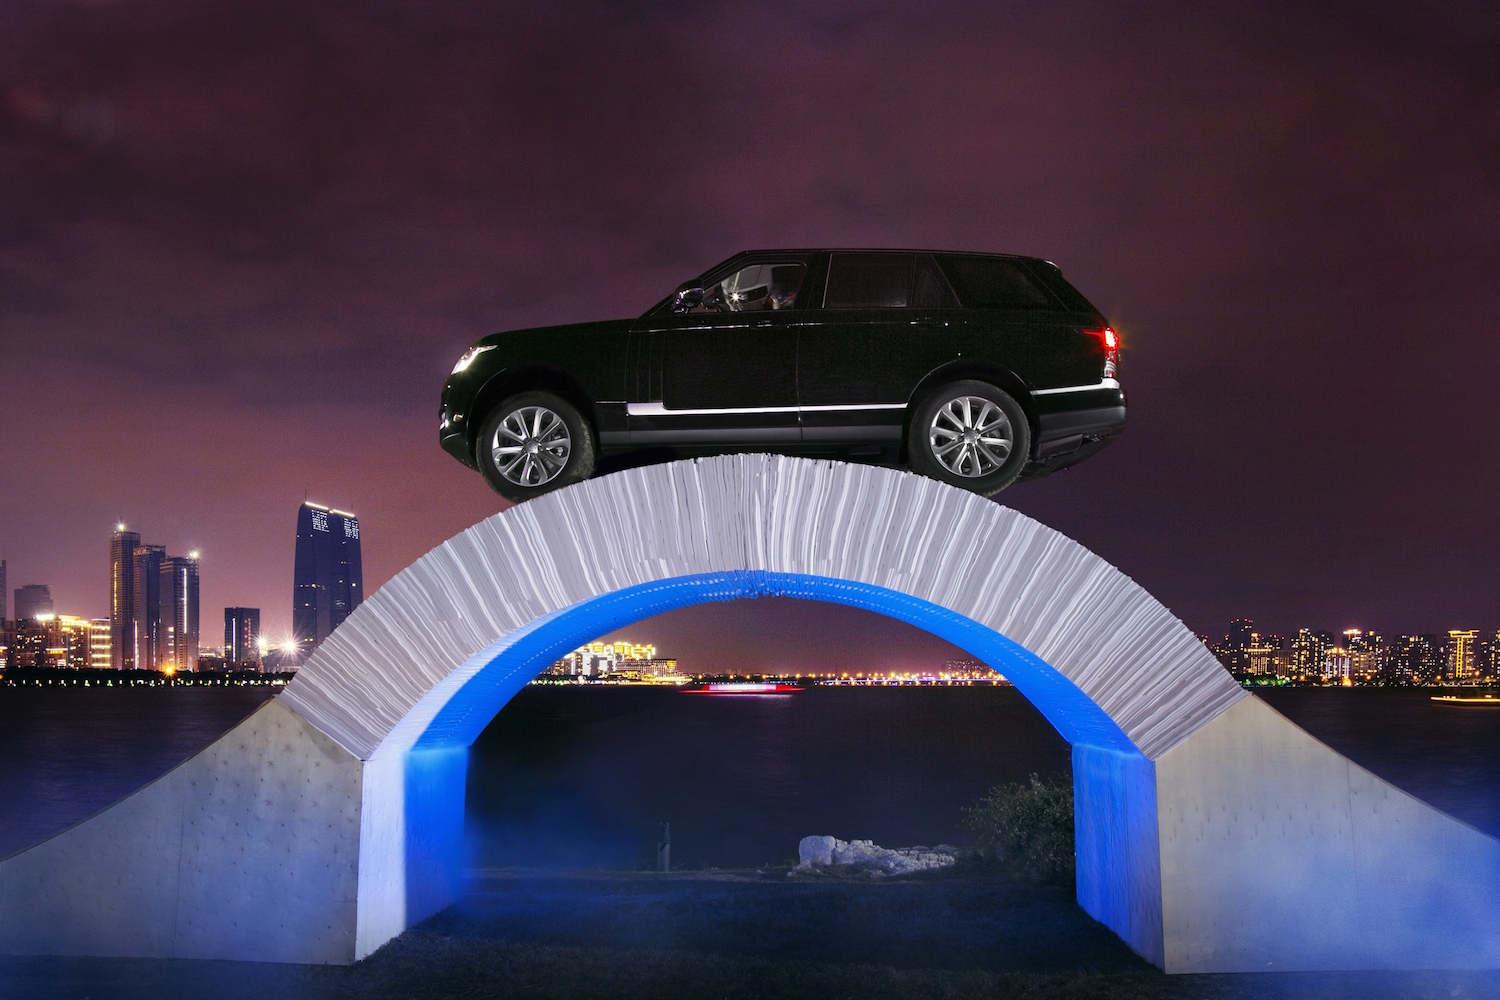 Range rover drives across paper brige